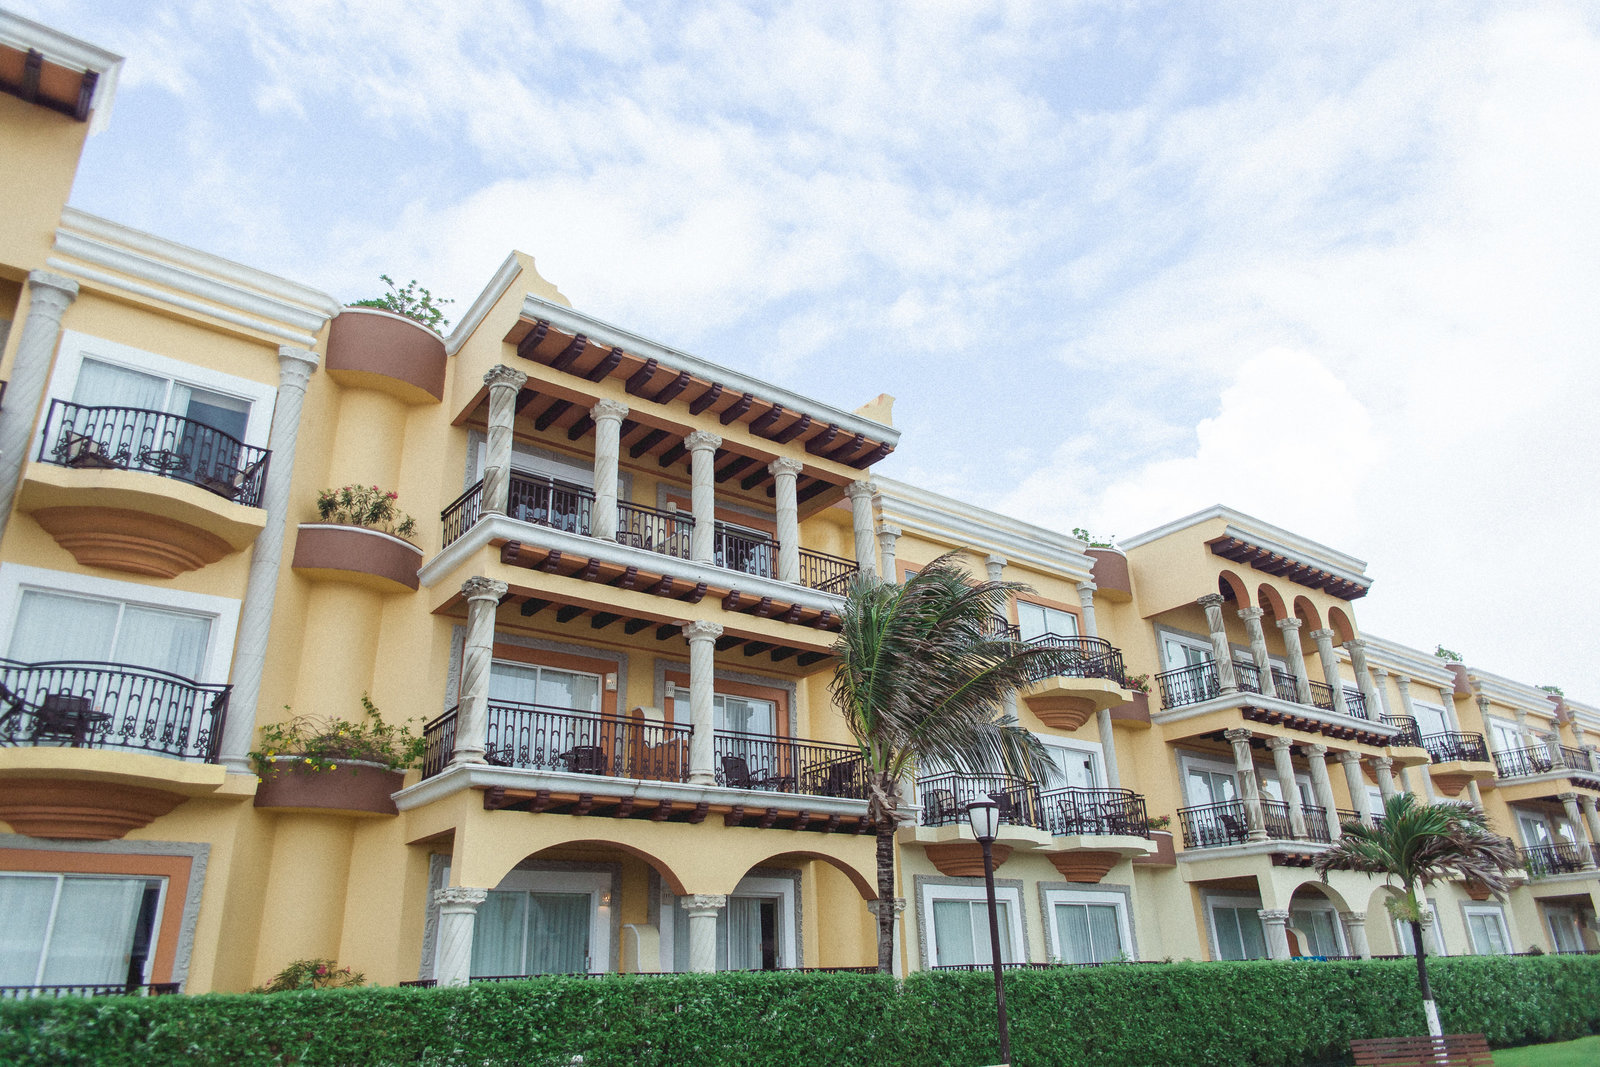 DiBlasio Photo-Mexico-9901